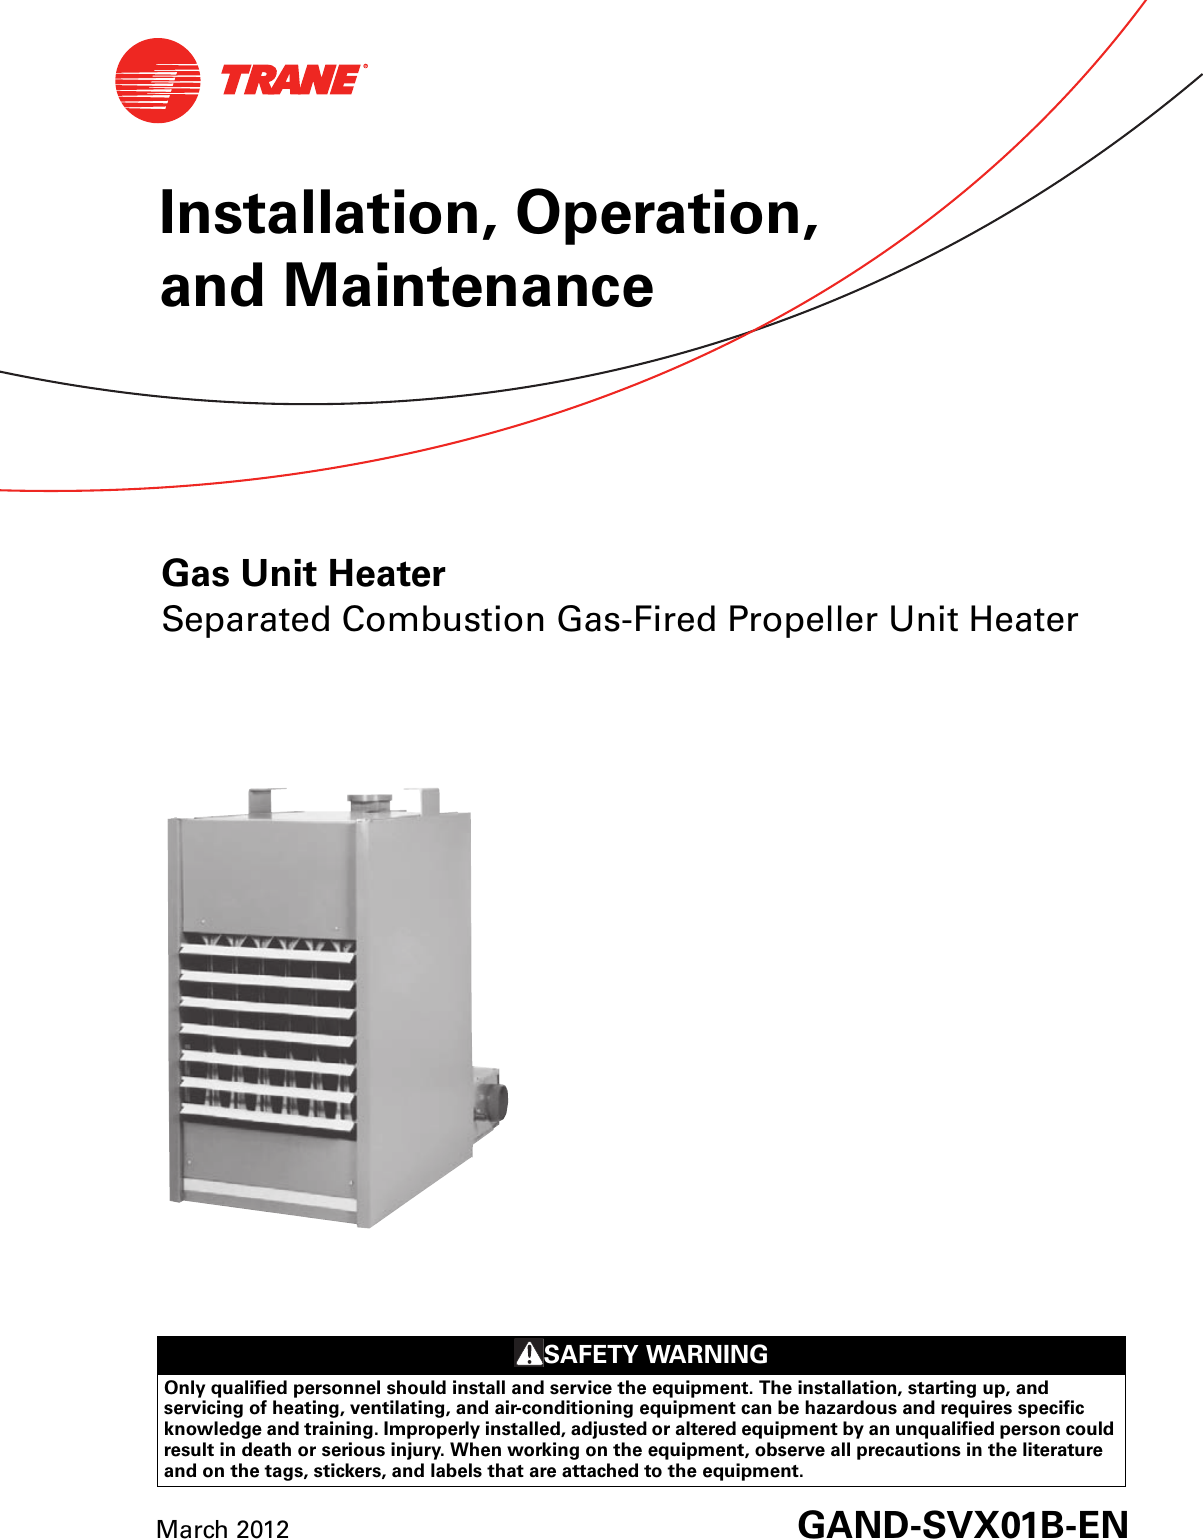 Trane Gas Fired Unit Heaters Wiring Diagram - Wiring Diagrams on